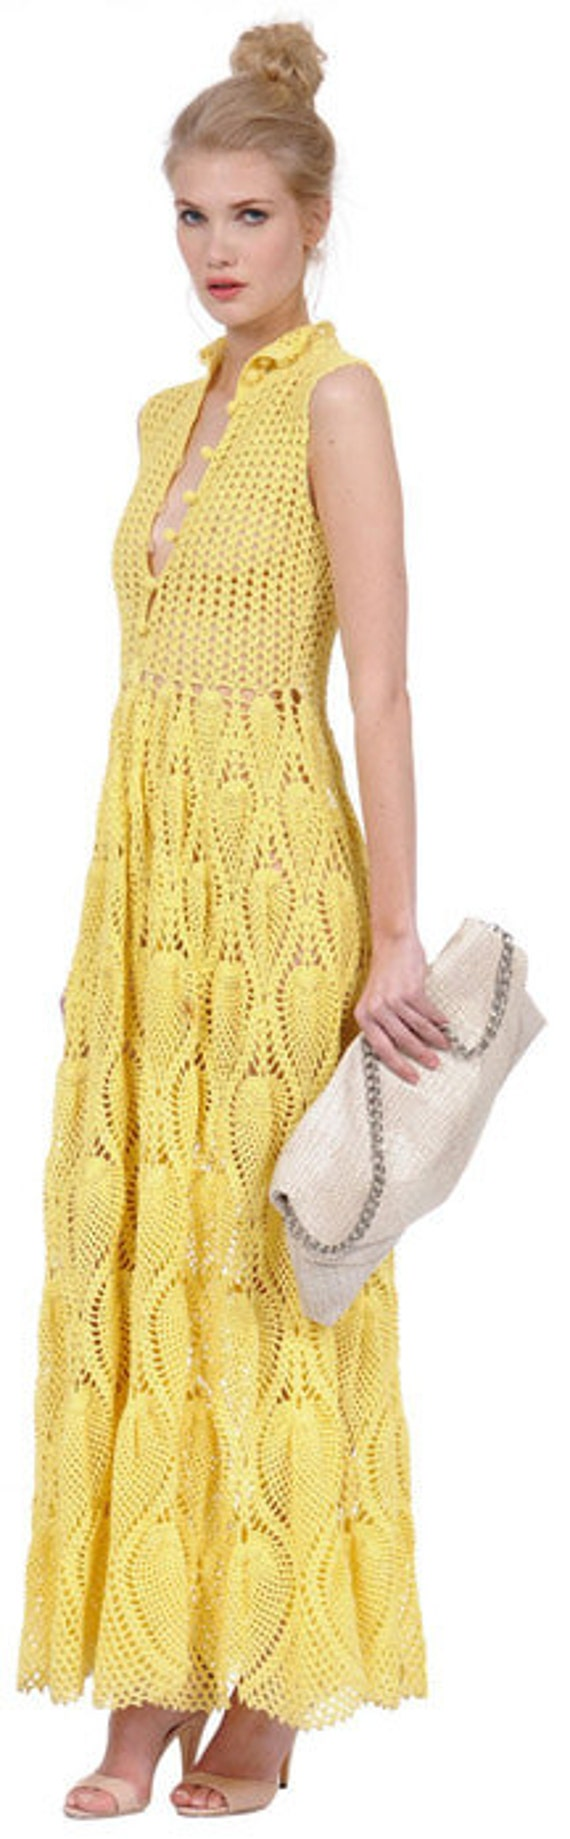 Crochet women long summer dress with pineapples by AsDidy on Etsy